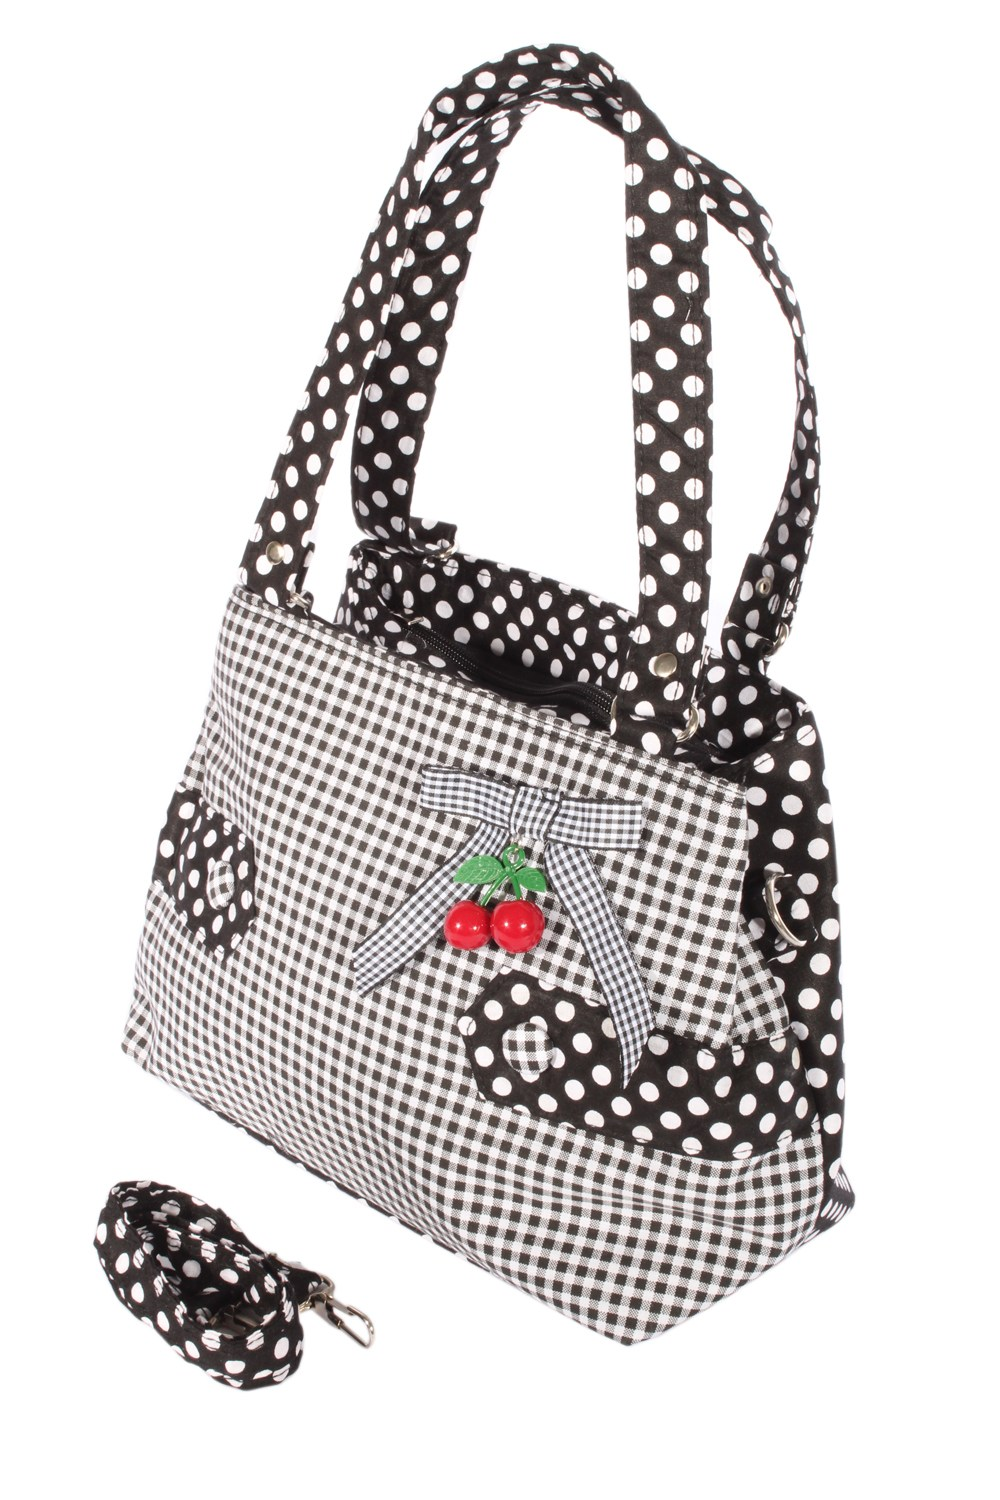 Gingham Uniform Polka Dots rockabilly RETRO Kirschen Handtasche Tasche